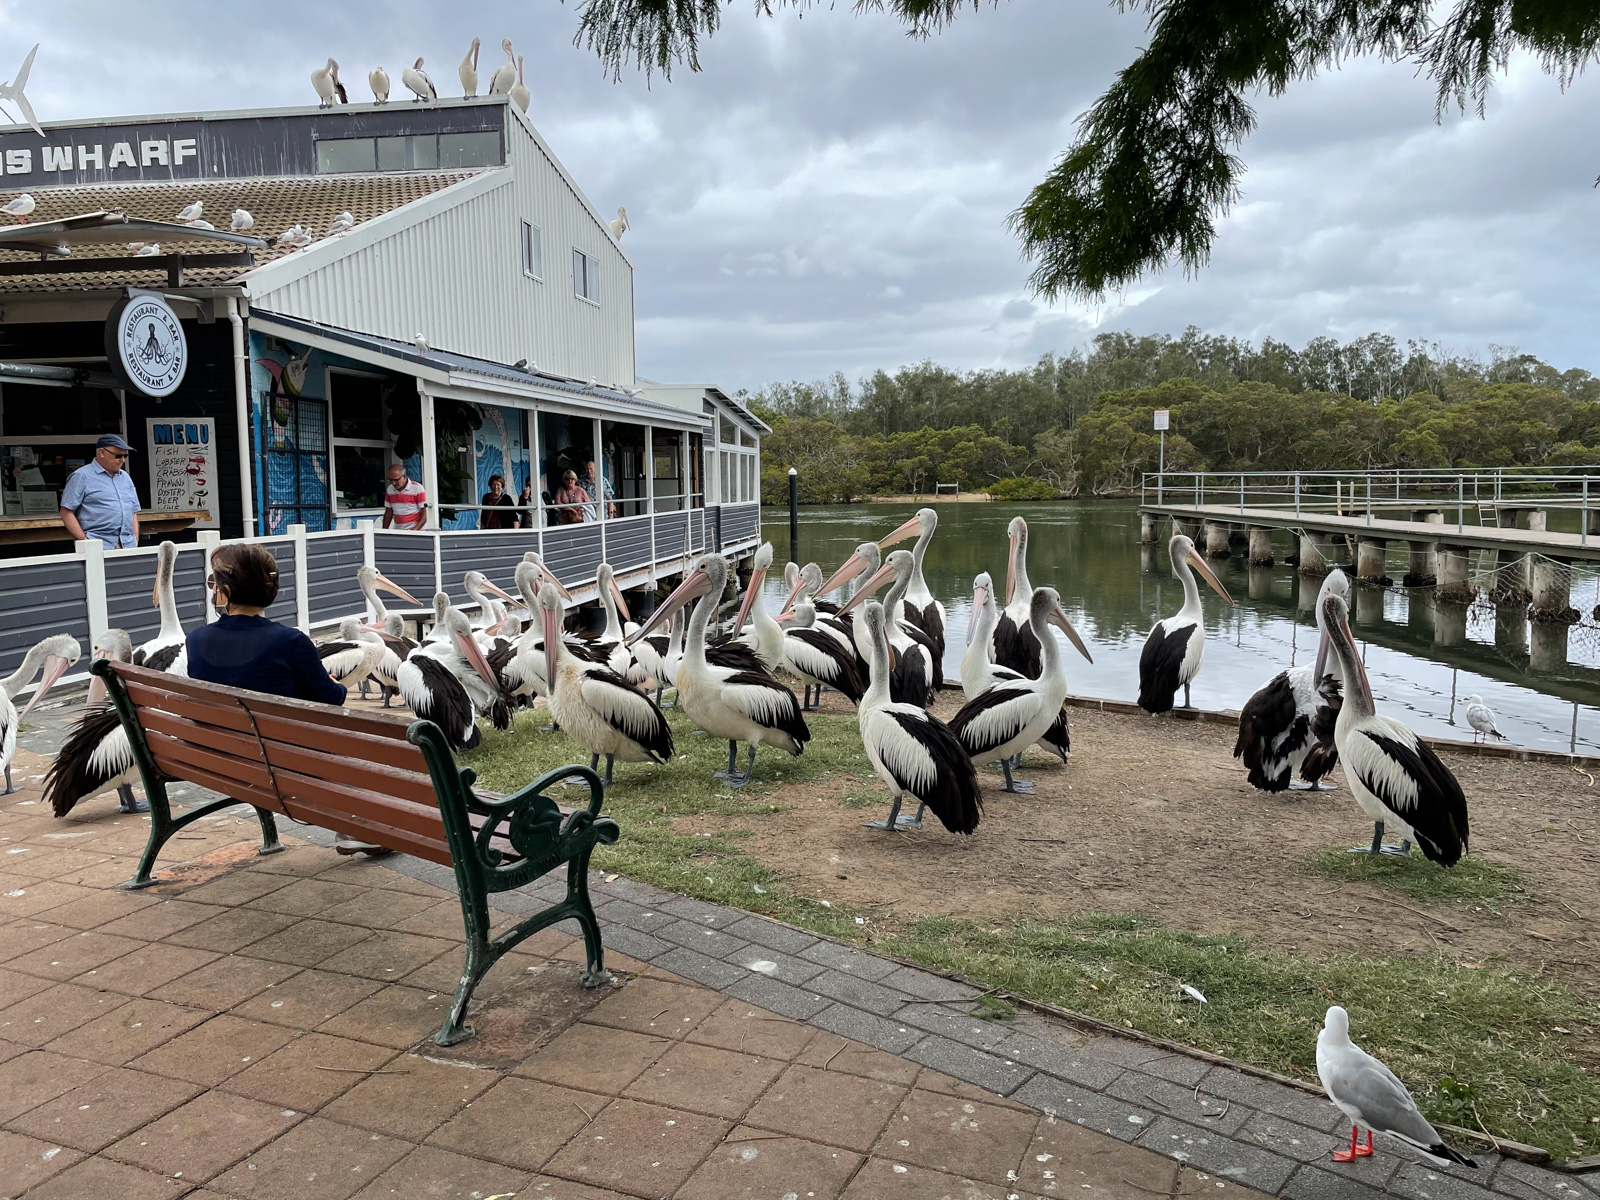 A group of pelicans perched on the grass near a fish and chip shop on the water. A boardwalk can be seen going along the water